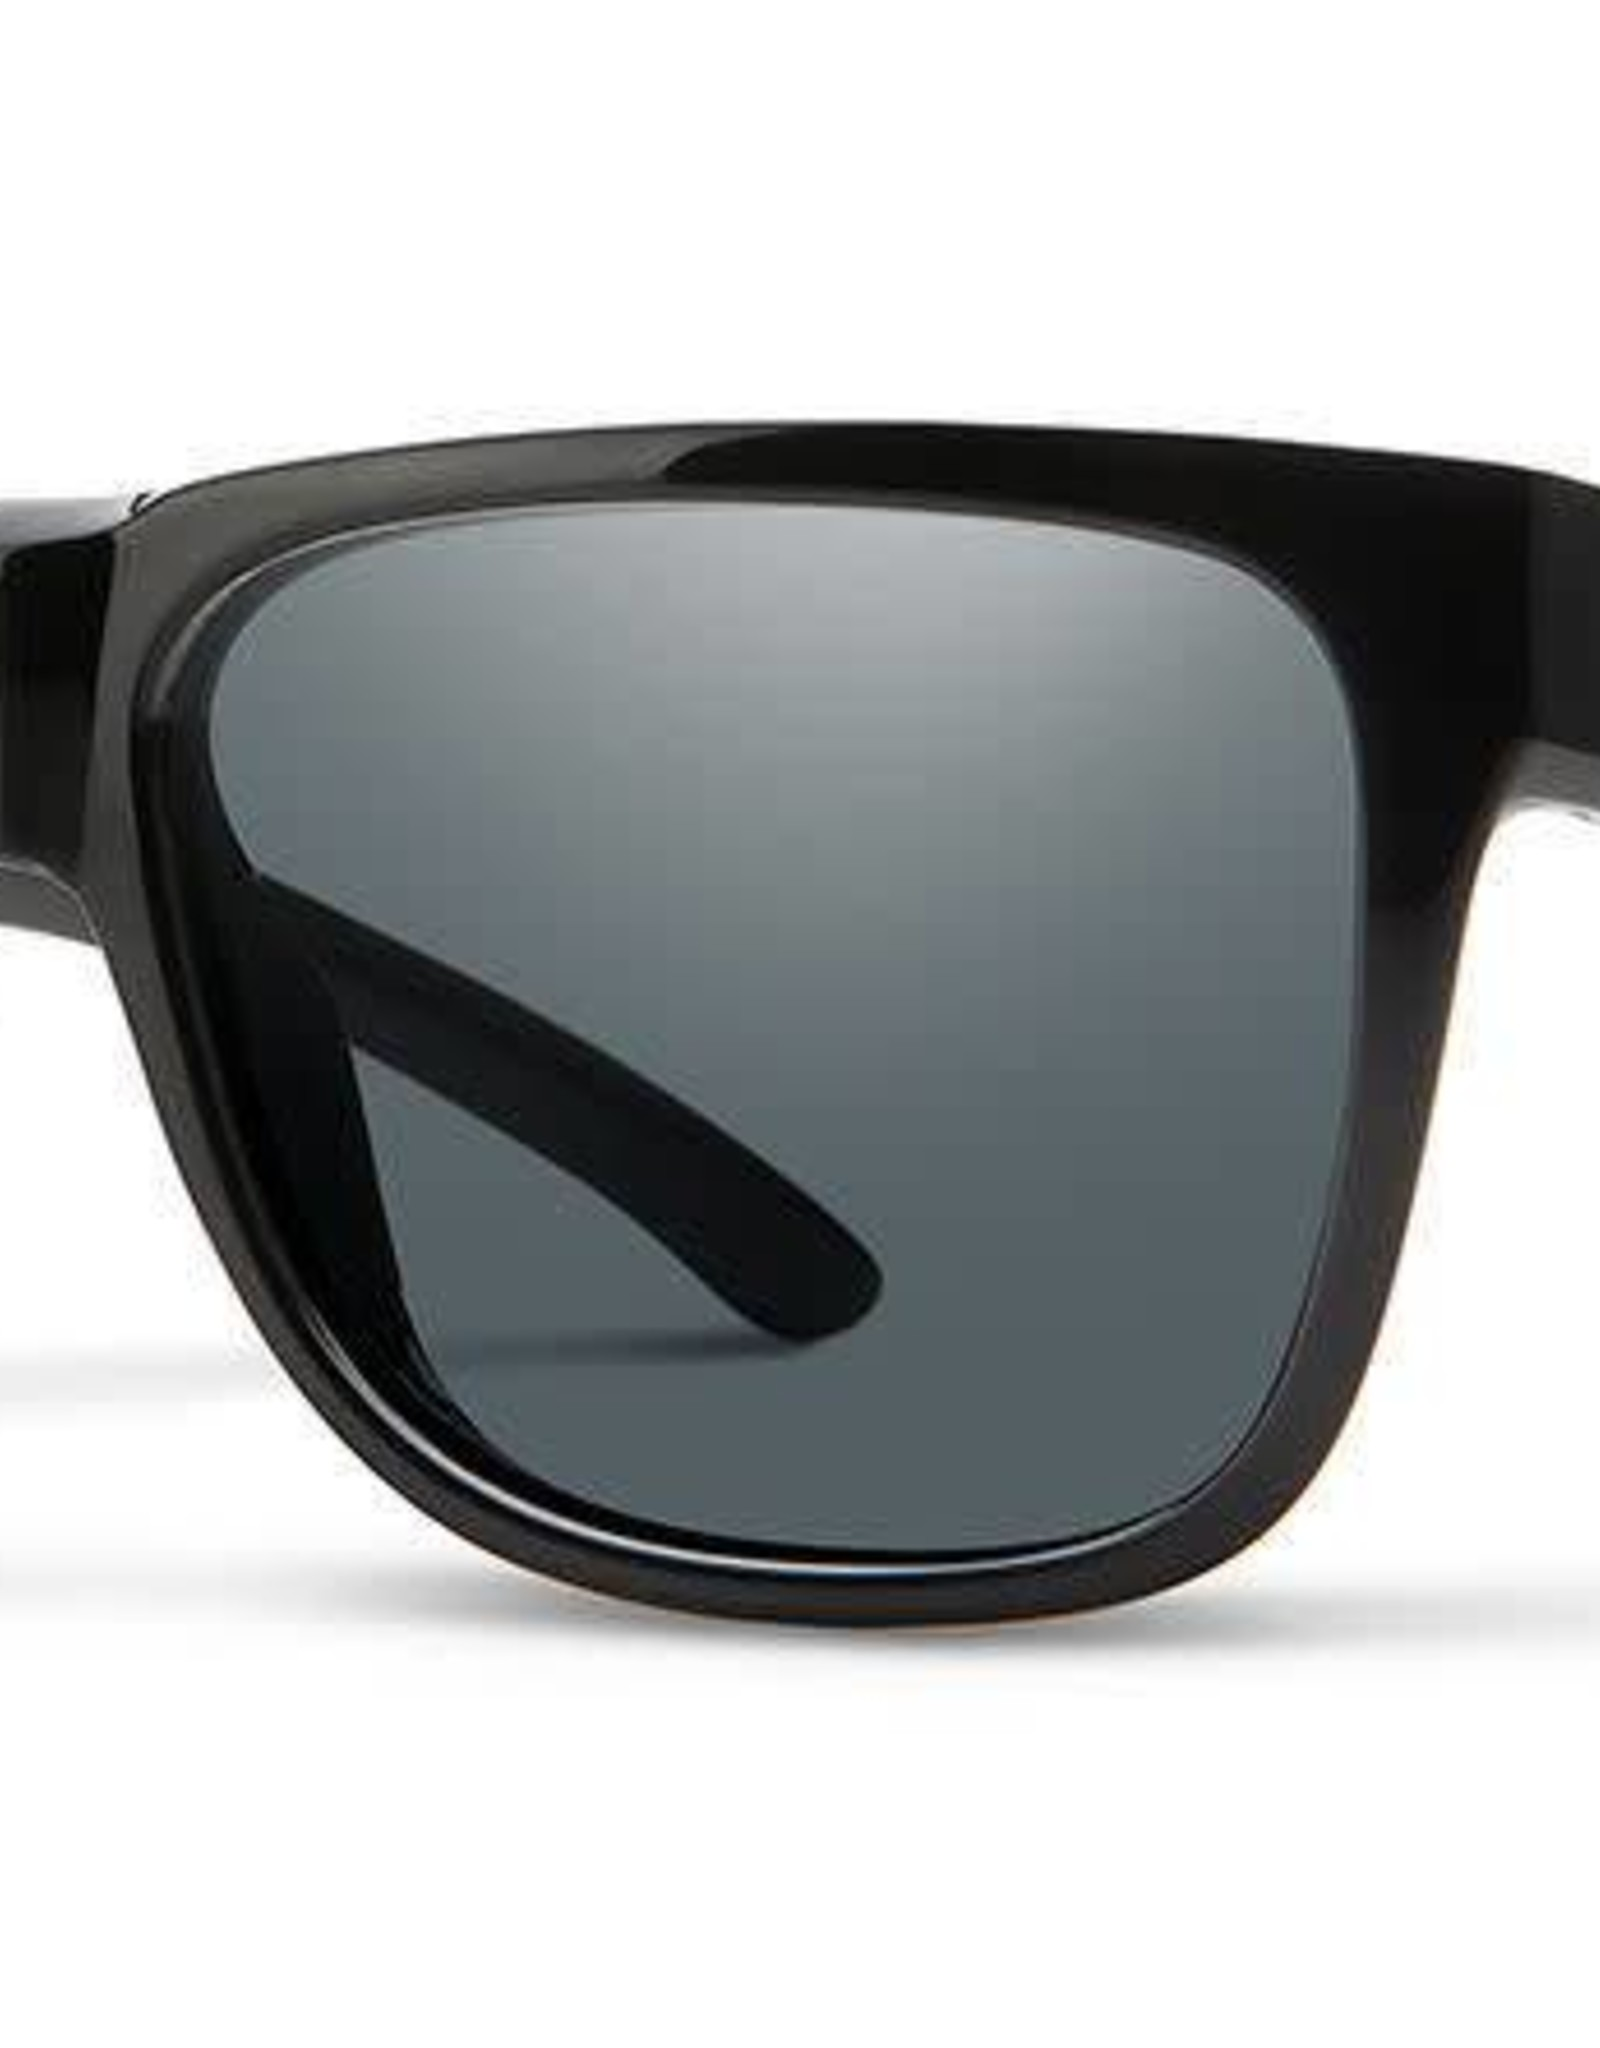 Smith Optics Smith - LOWDOWN 2 - Black w/ POLAR Gray